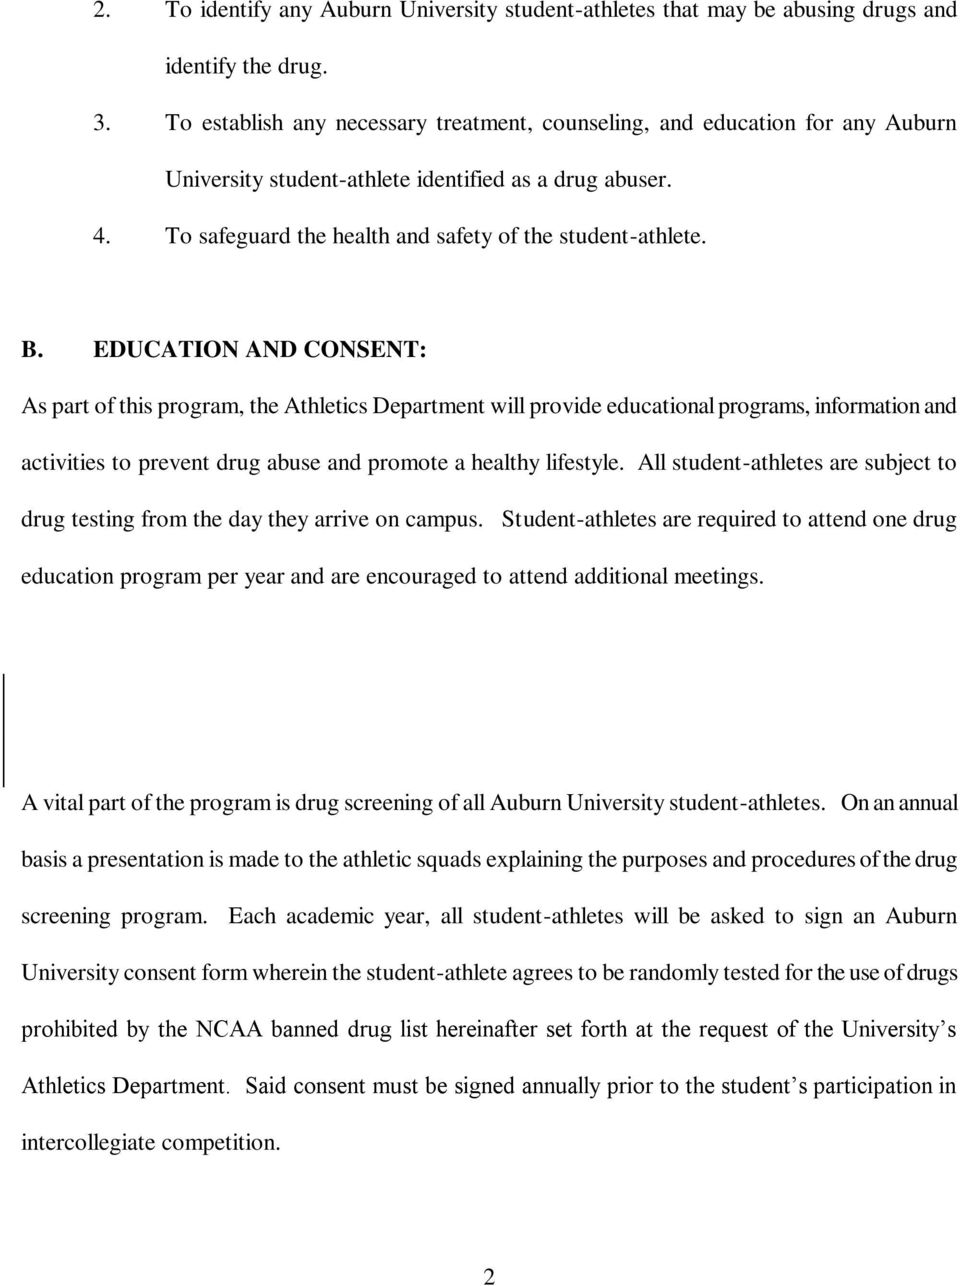 EDUCATION AND CONSENT: As part of this program, the Athletics Department will provide educational programs, information and activities to prevent drug abuse and promote a healthy lifestyle.